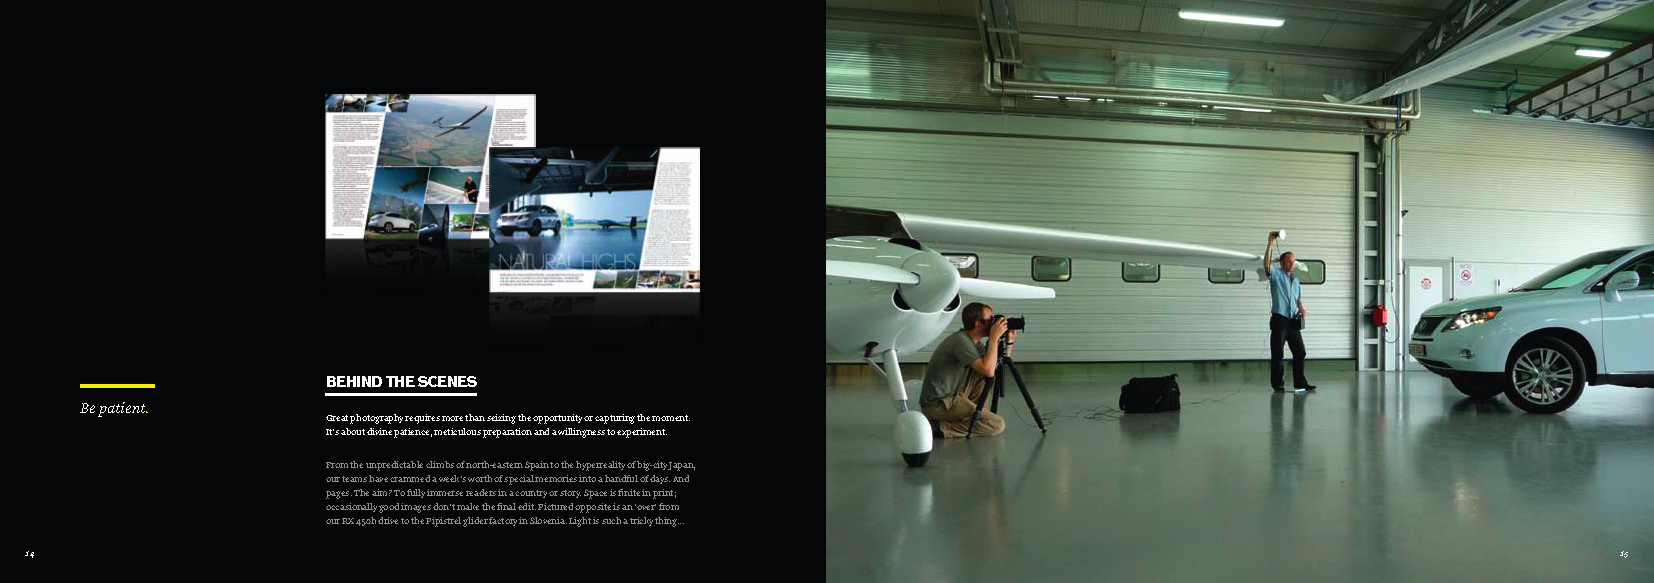 Lexus-case-study-Story-photography